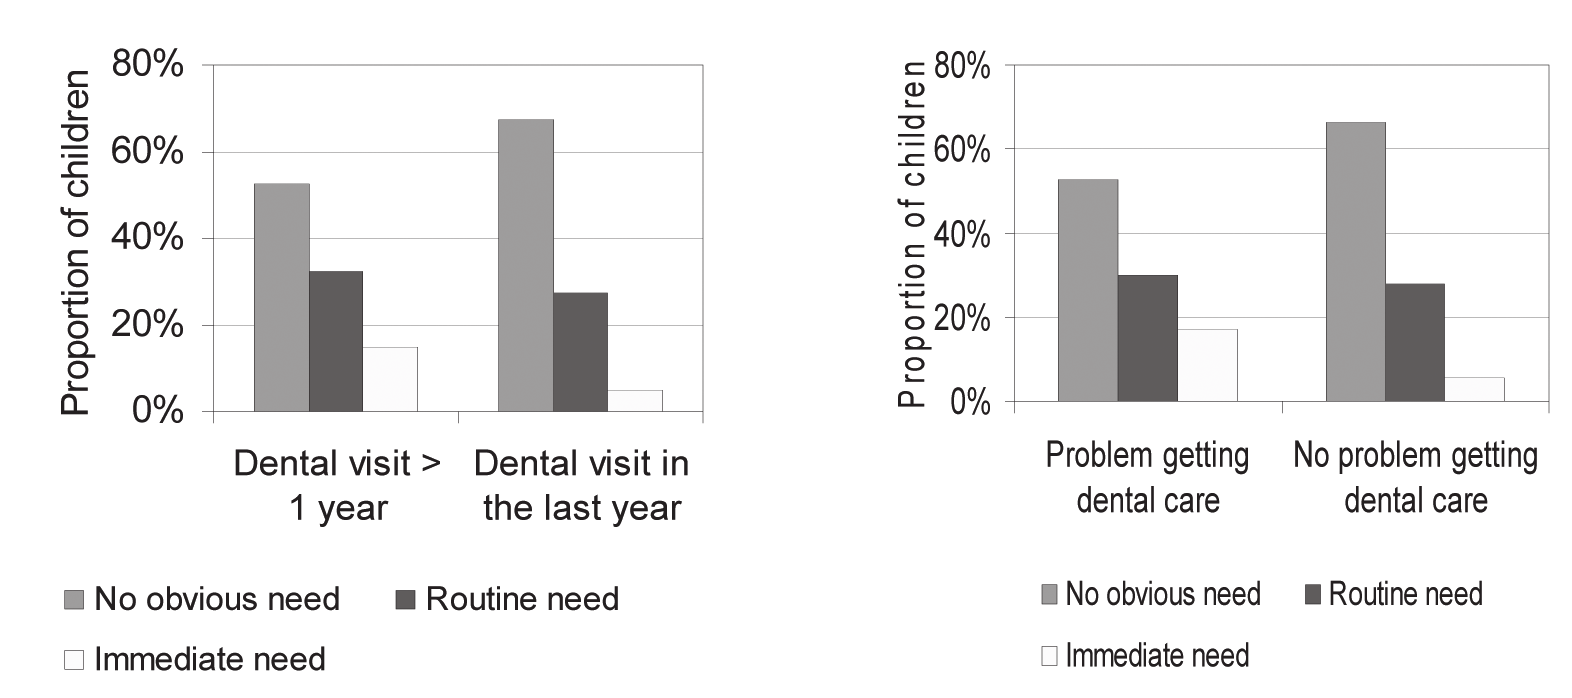 18 Count Your Smiles URGENCY OF NEEDED DENTAL CARE (Treatment Urgency) Uninsured children enrolled in free and reduced lunch programs were nearly three times more likely to have immediate dental